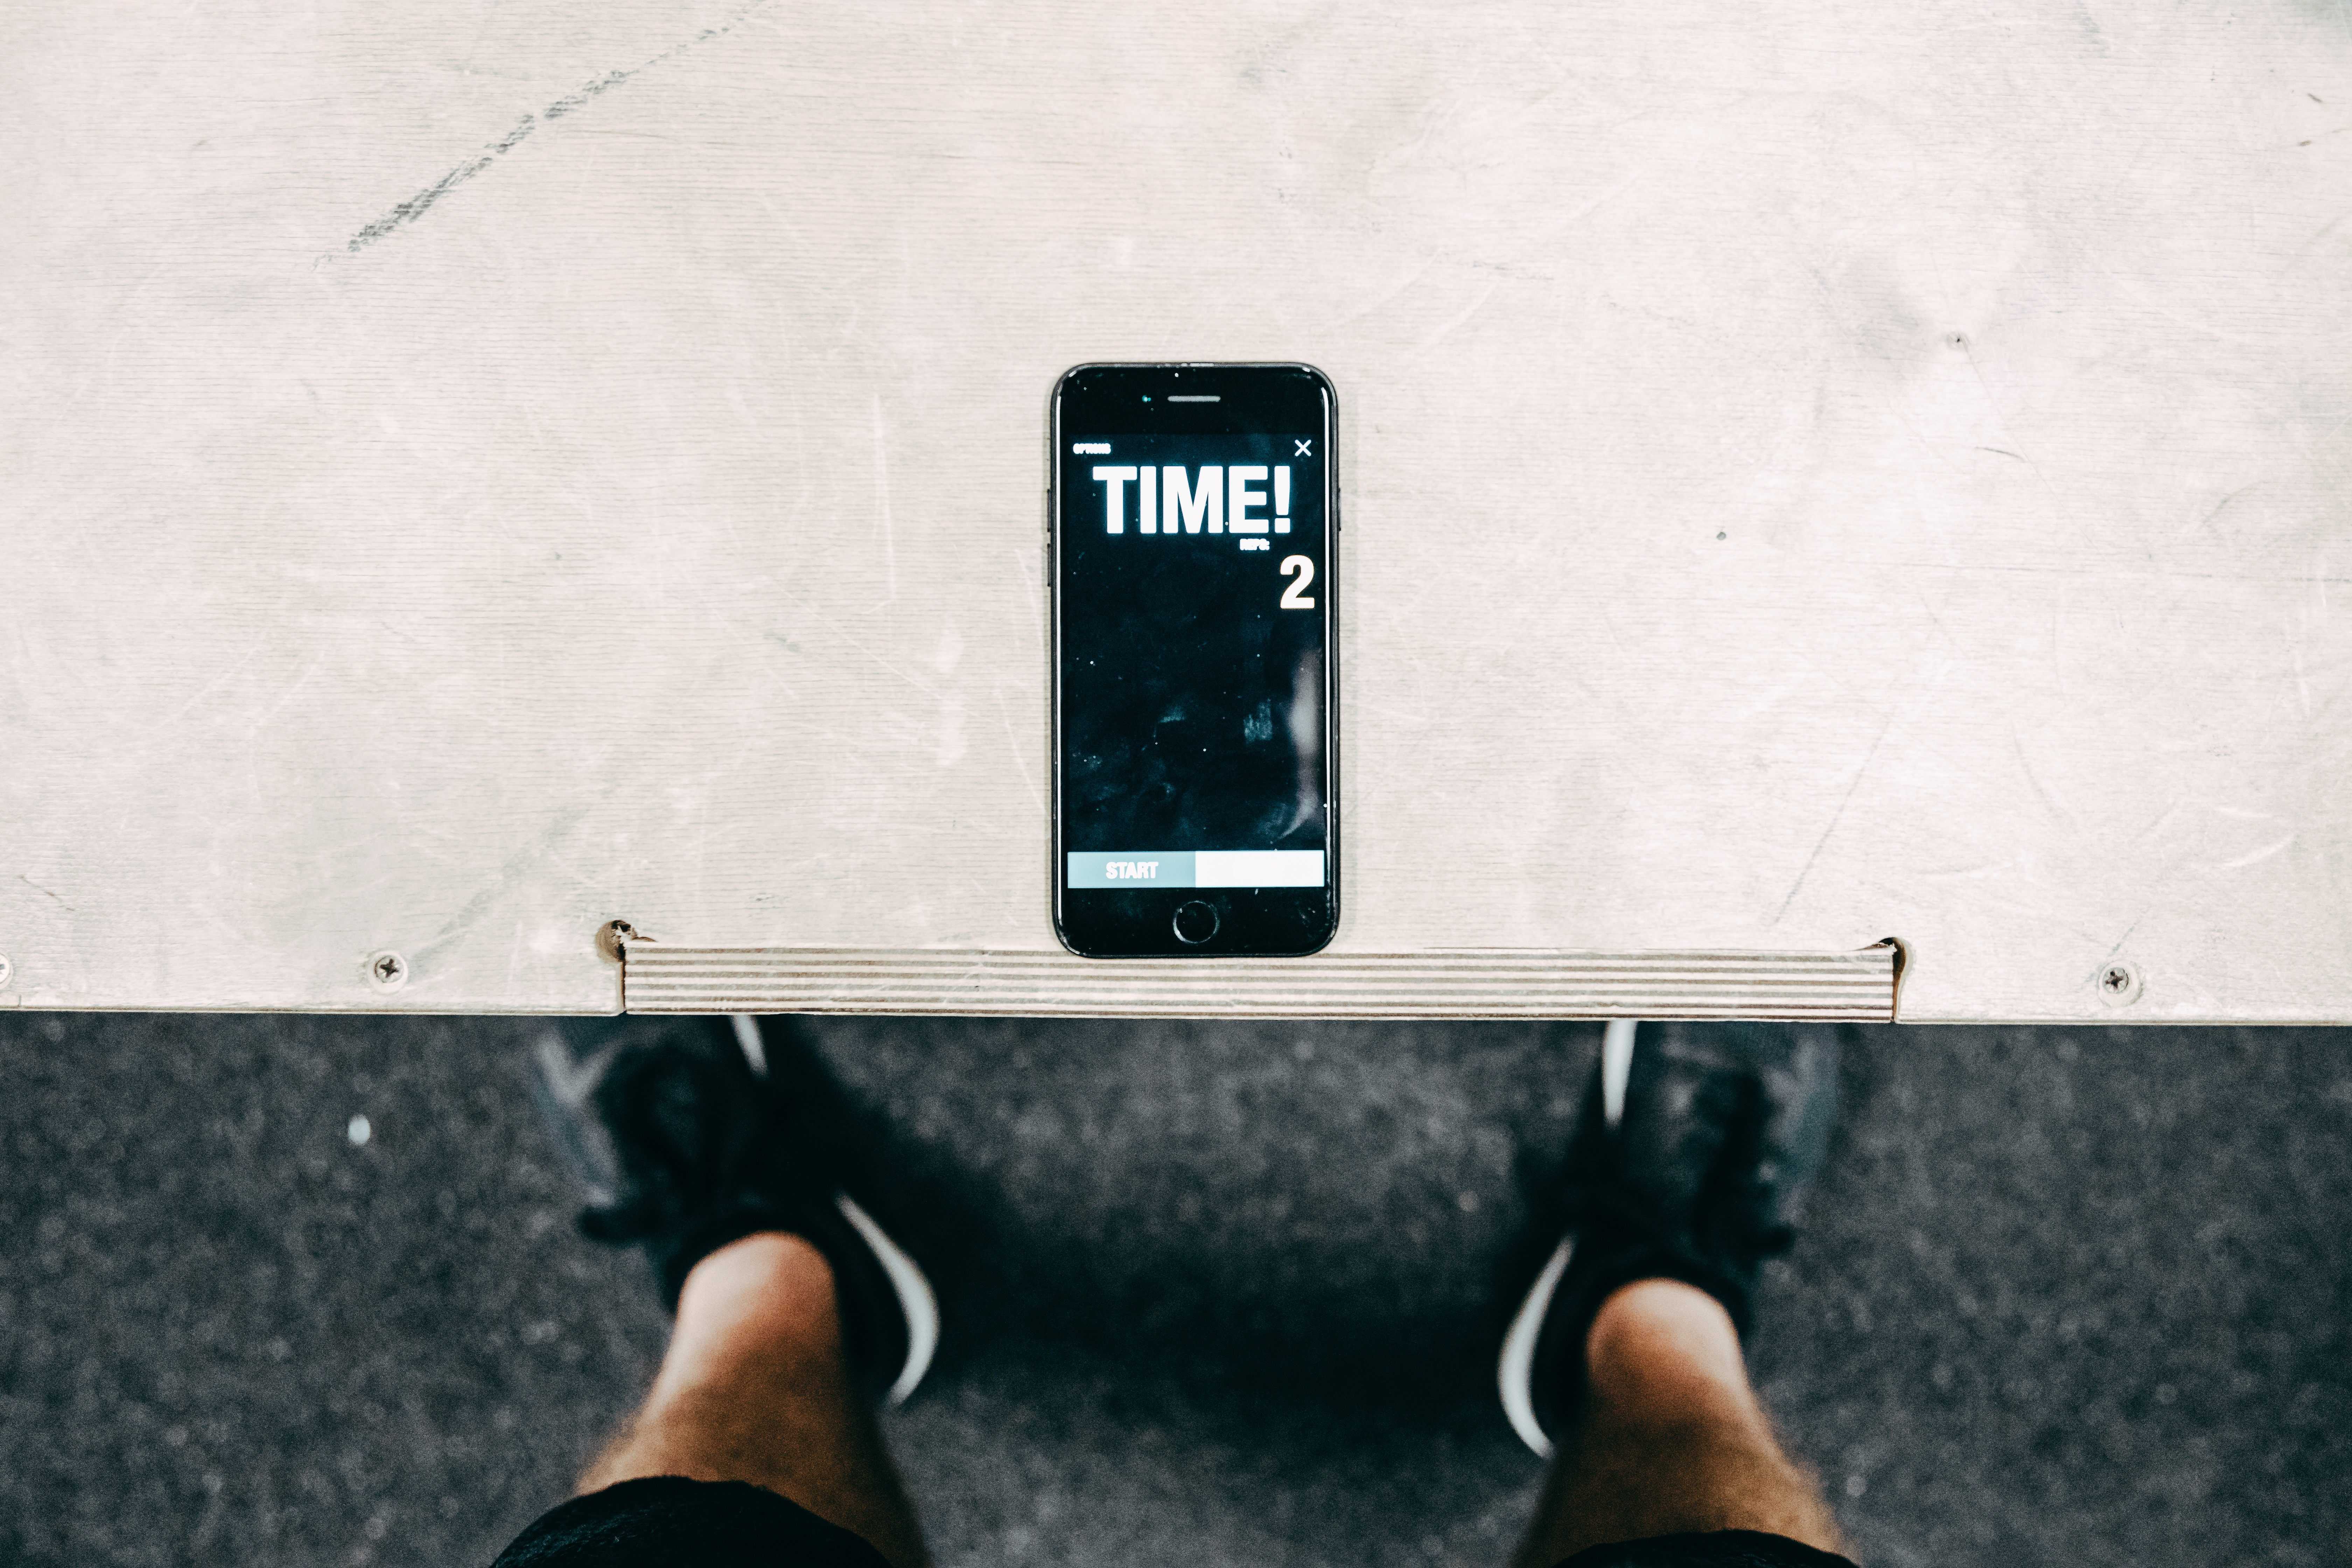 Phone on table timing a workout